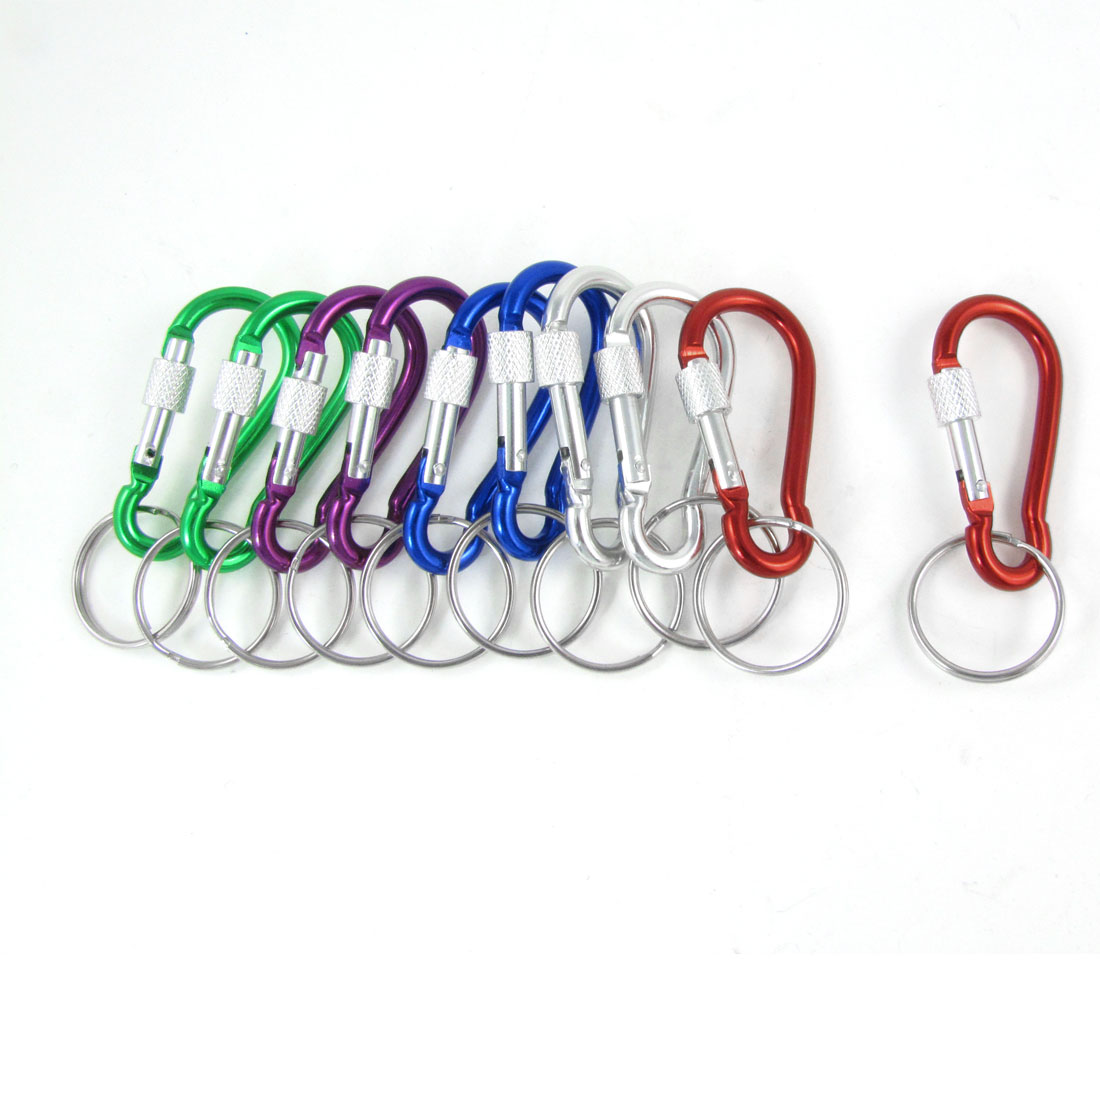 10 pcs Colored Aluminum Alloy Screw Lock Hiking Keychain Snap Clip Carabiner Hook